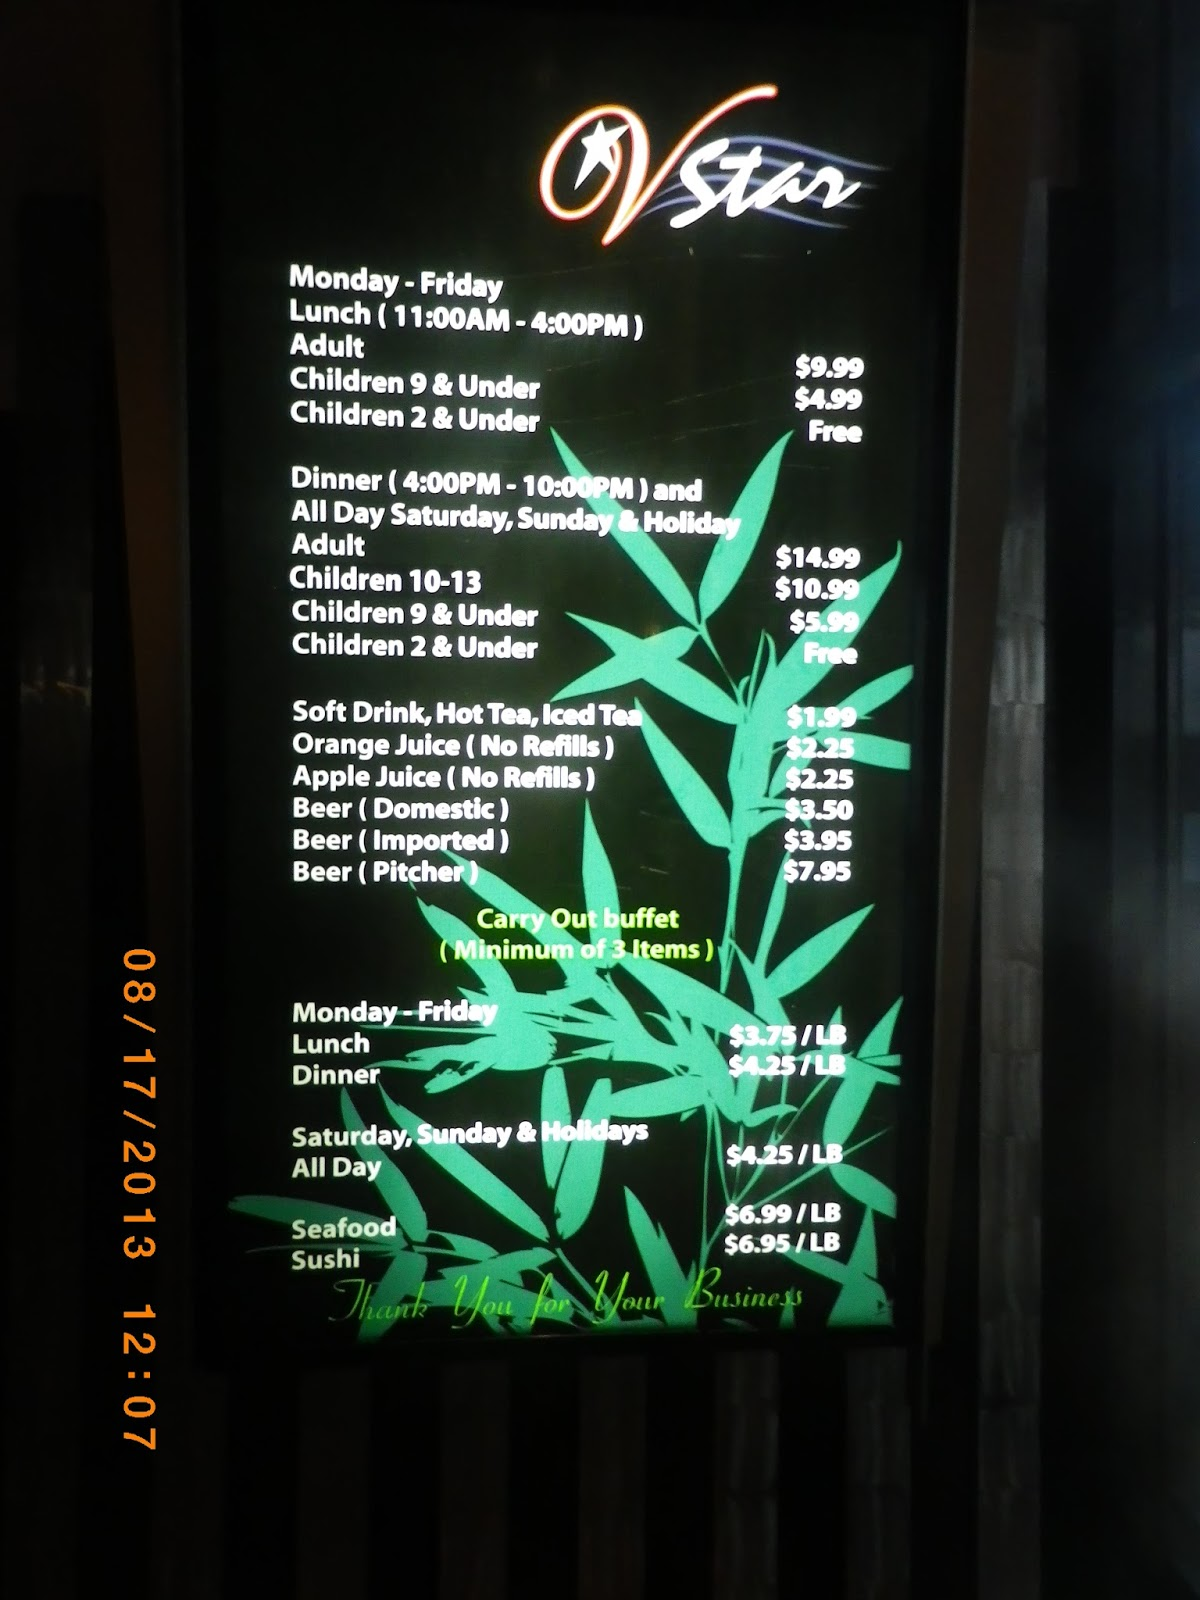 vc menu v star chinese buffet houston tx rh vc menu blogspot com china star buffet prices las vegas china star super buffet prices